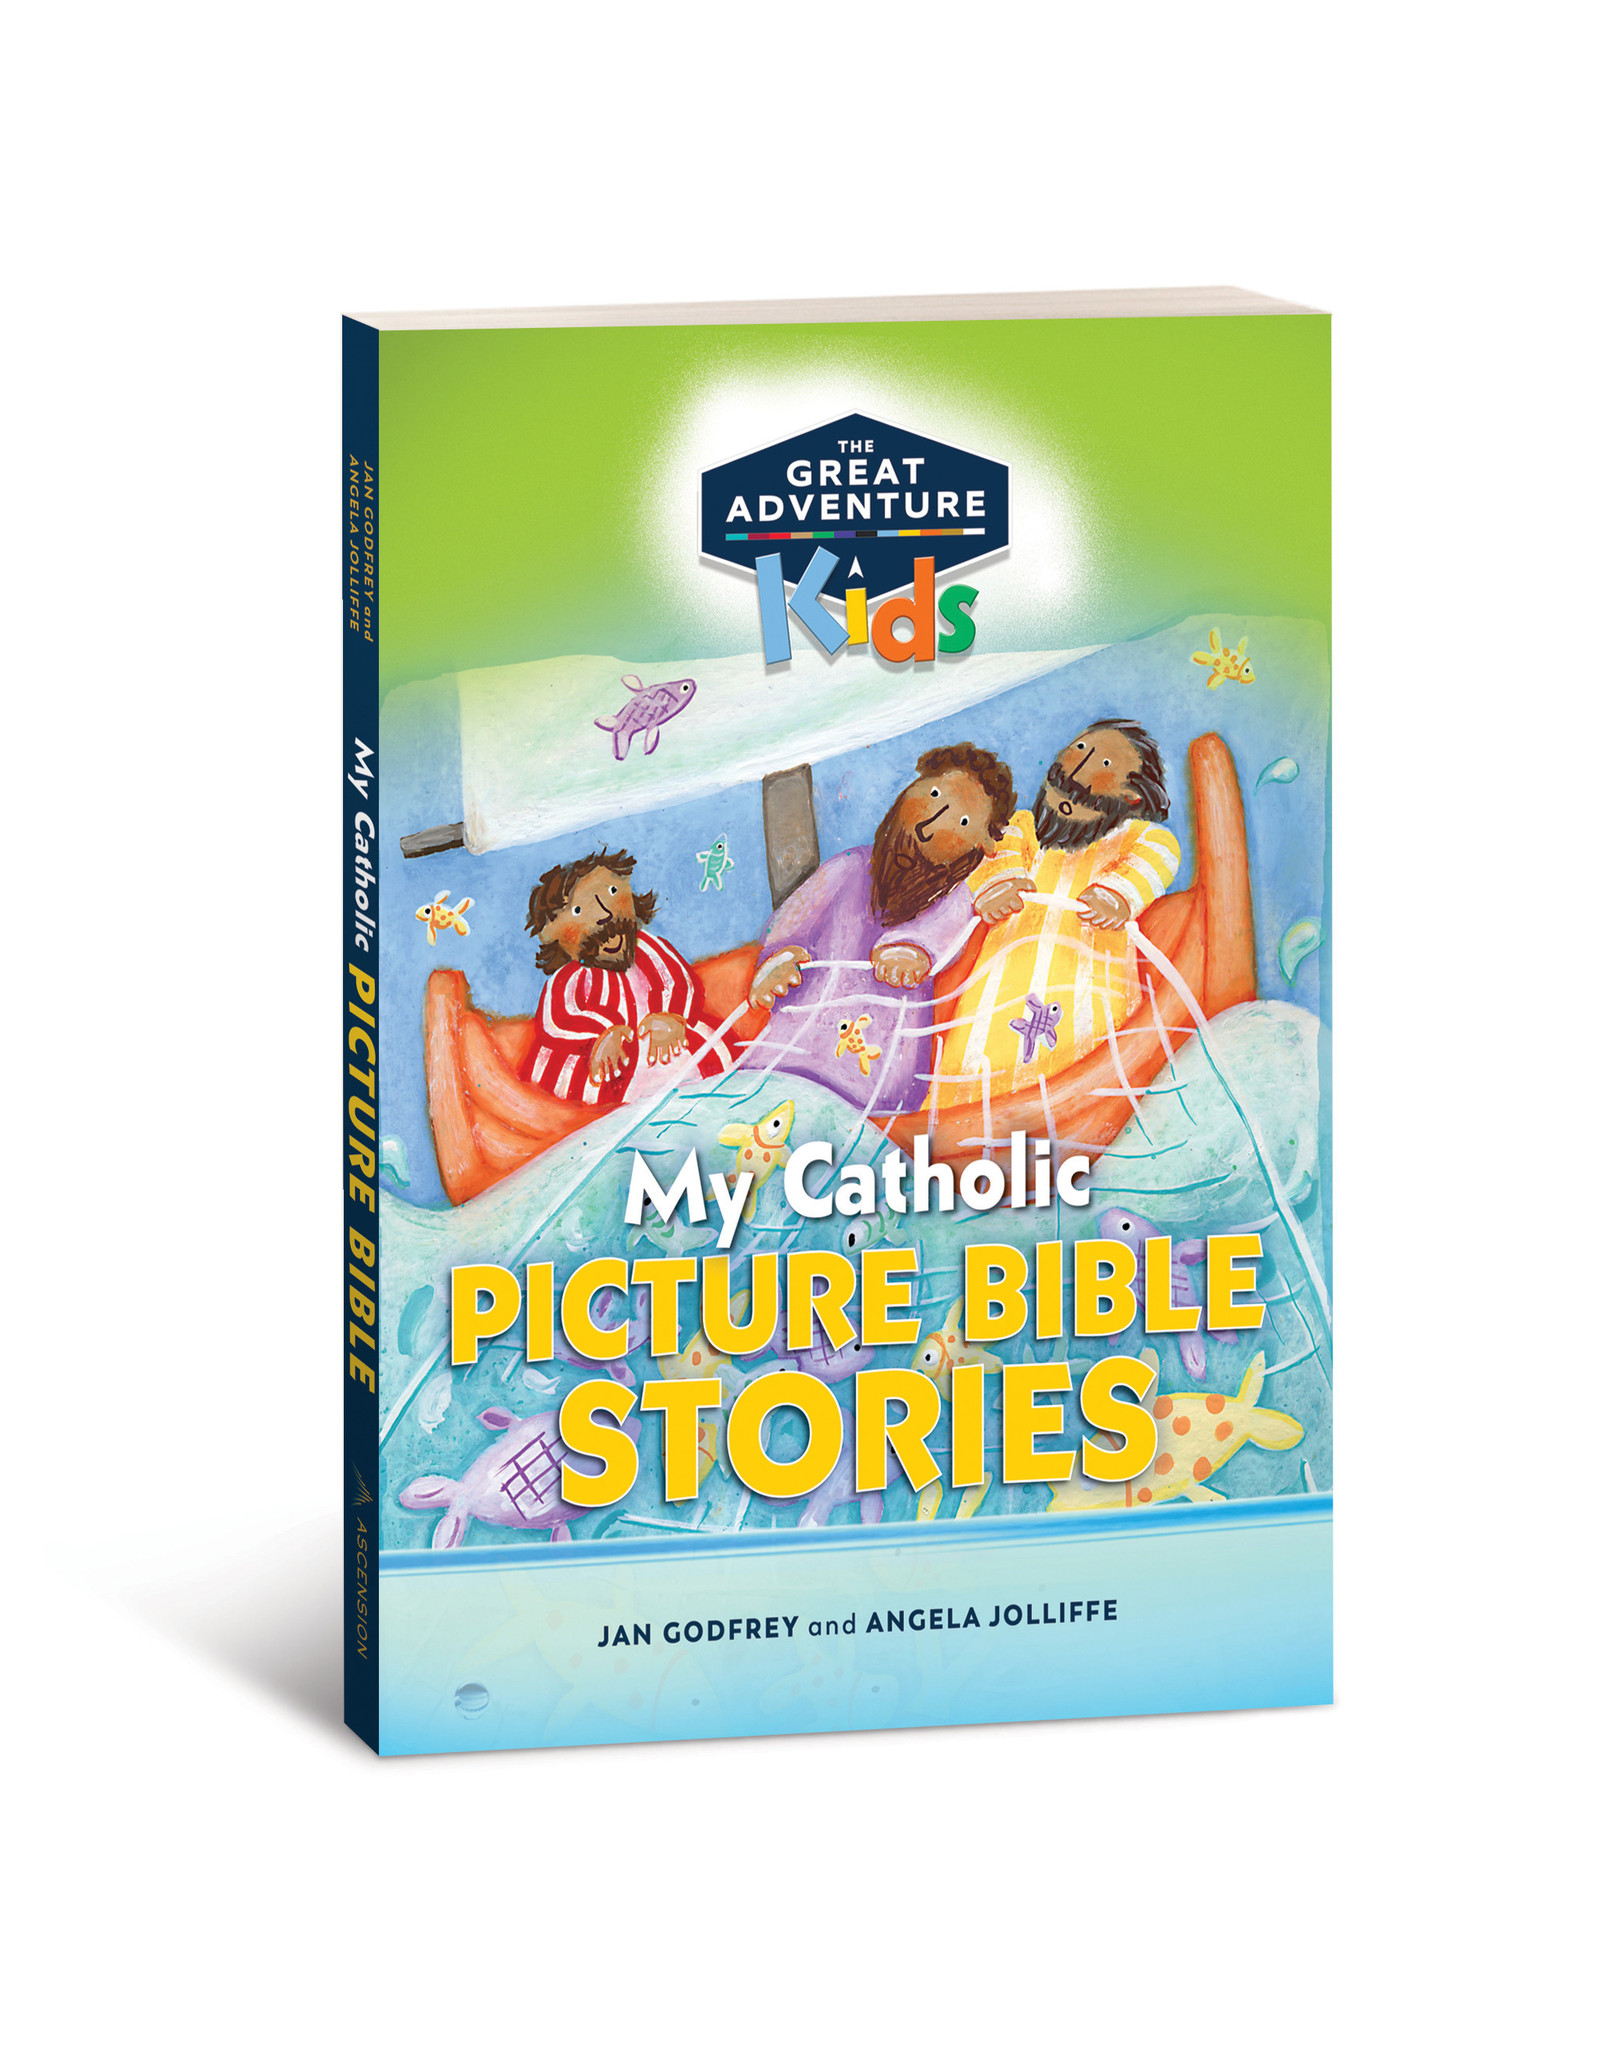 Great Adventure My Catholic Picture Bible Stories, Ages 4-7 - release date 7/17/20